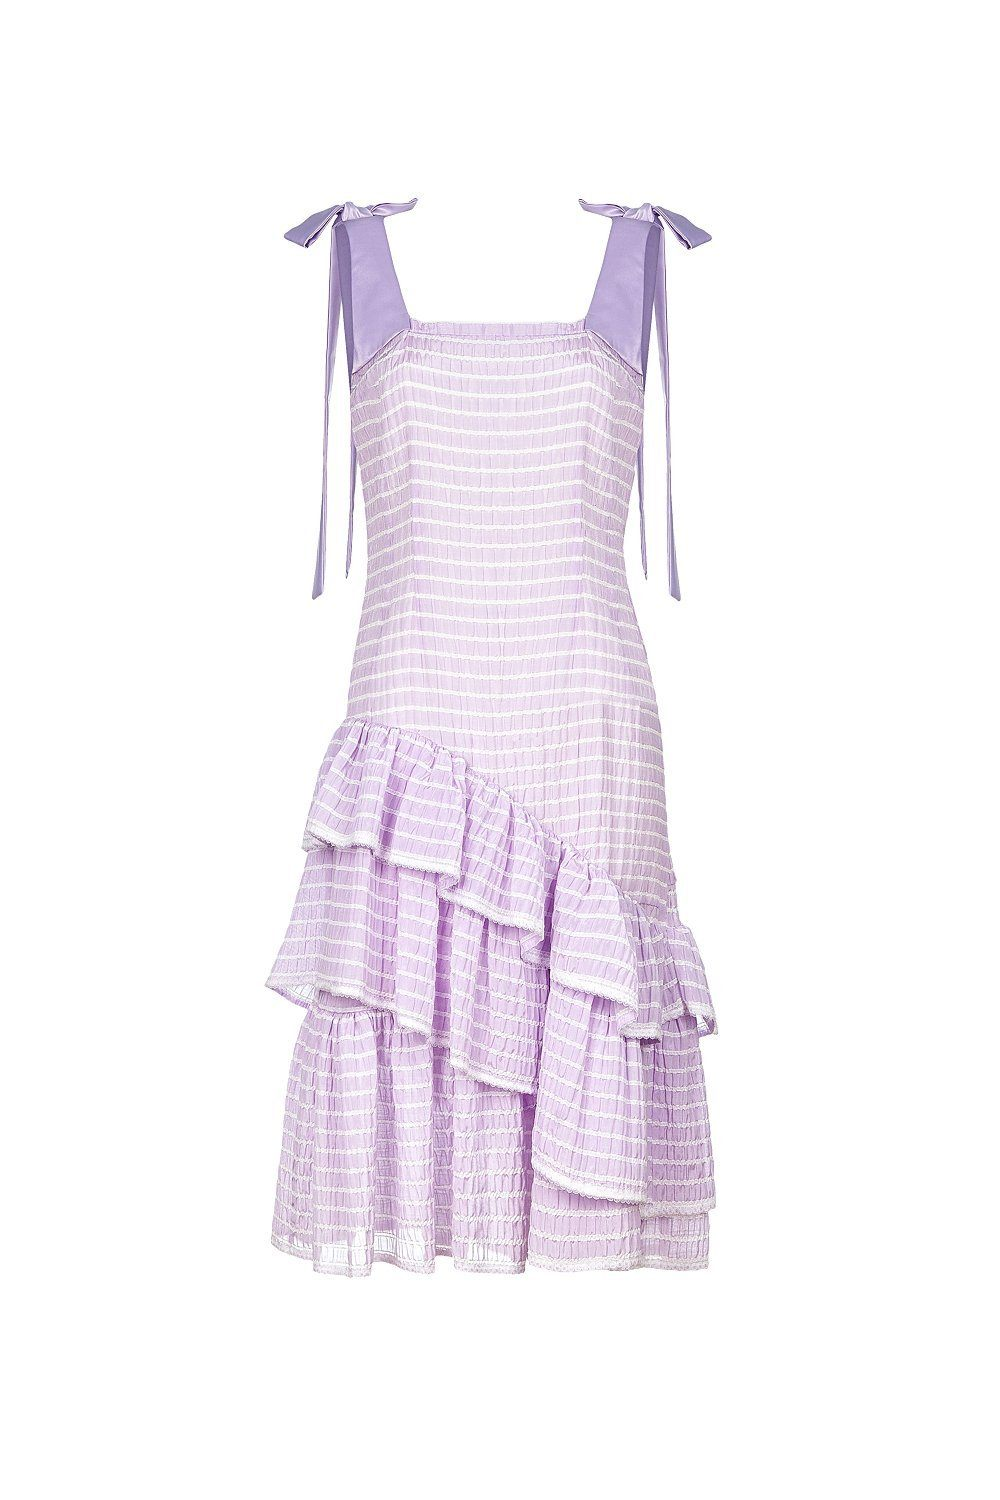 Lavender dress - dress